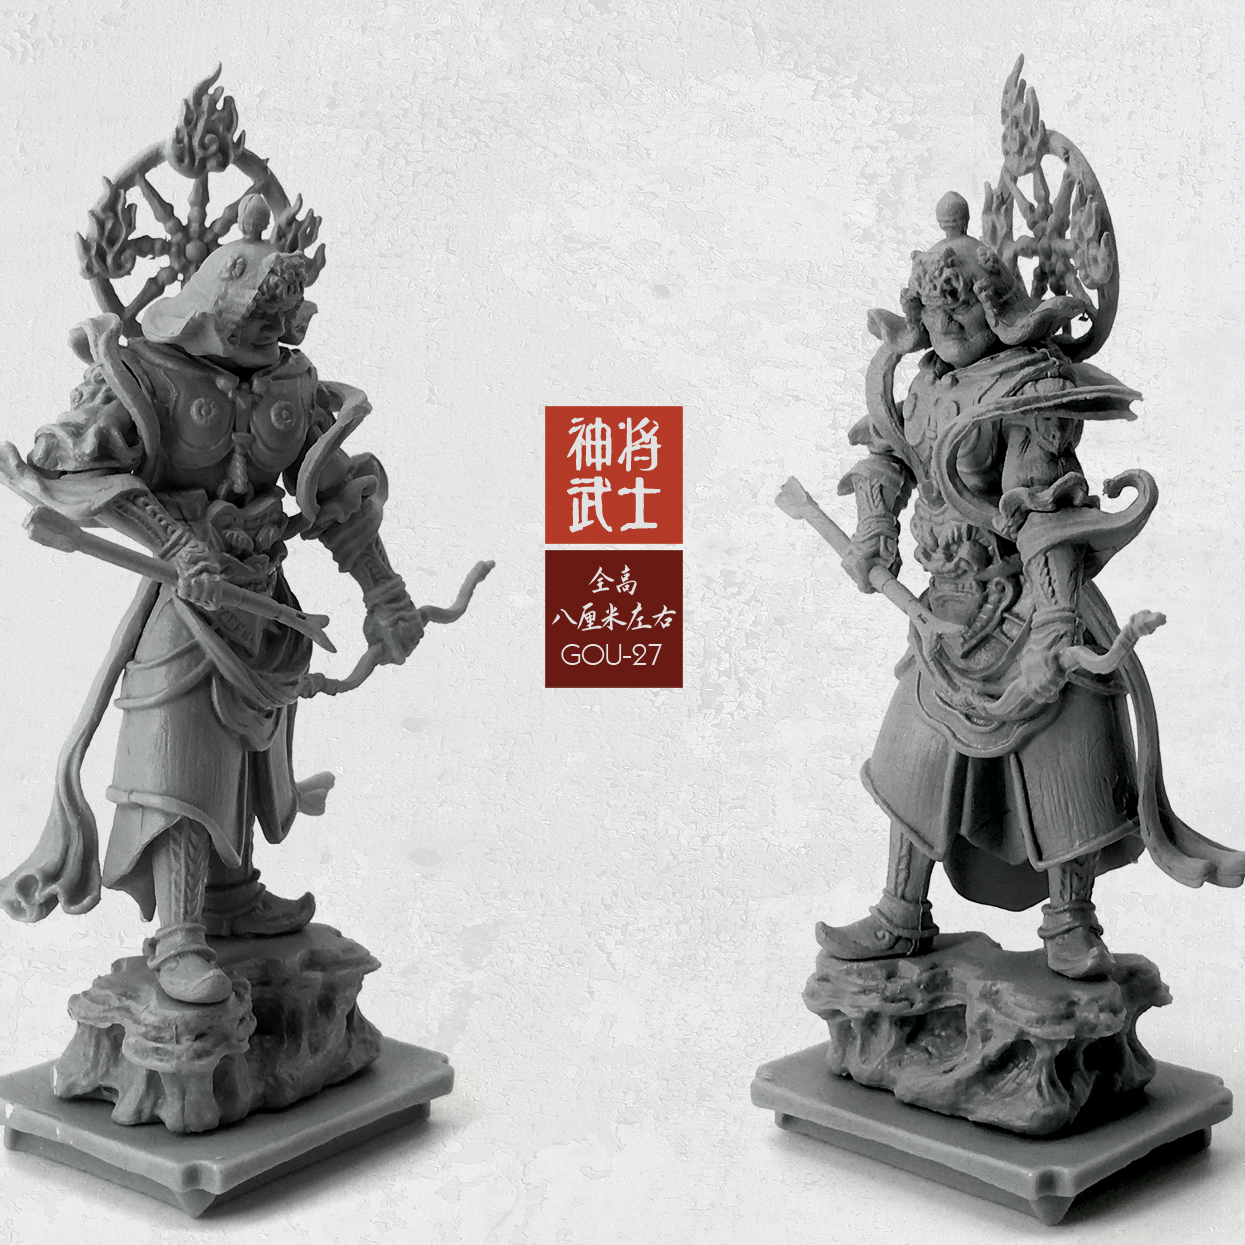 1/35 Figure Kit (50-60mm) Oriental Classical God Samurai Resin Soldier Colorless And Self-assembled Gou-26